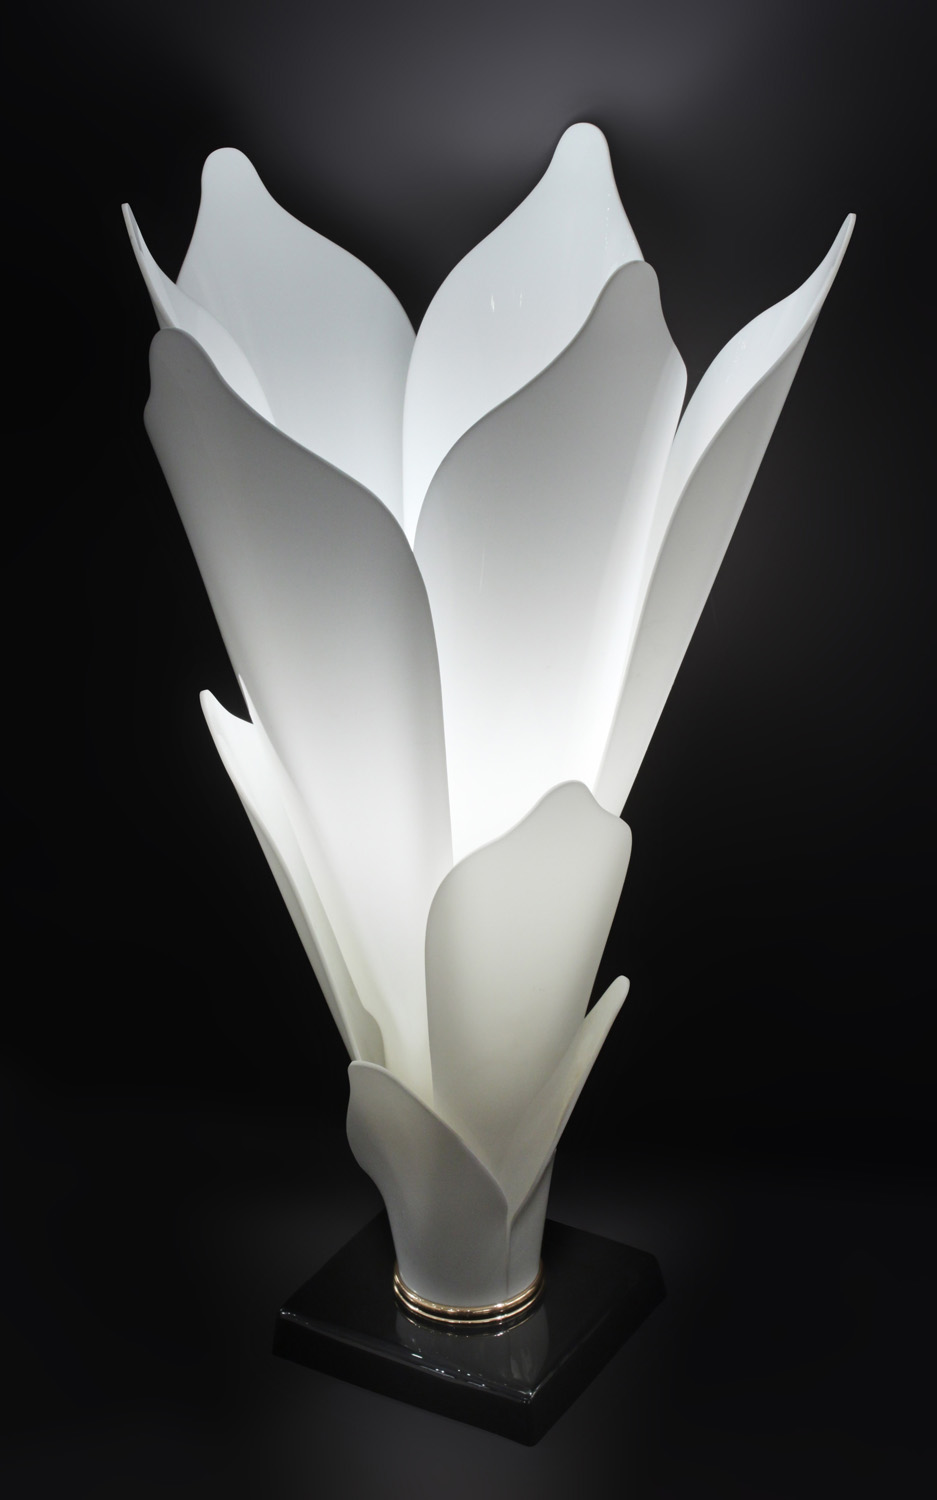 Rougier 30 white petals flower tablelamp220 detail1 hires.jpg